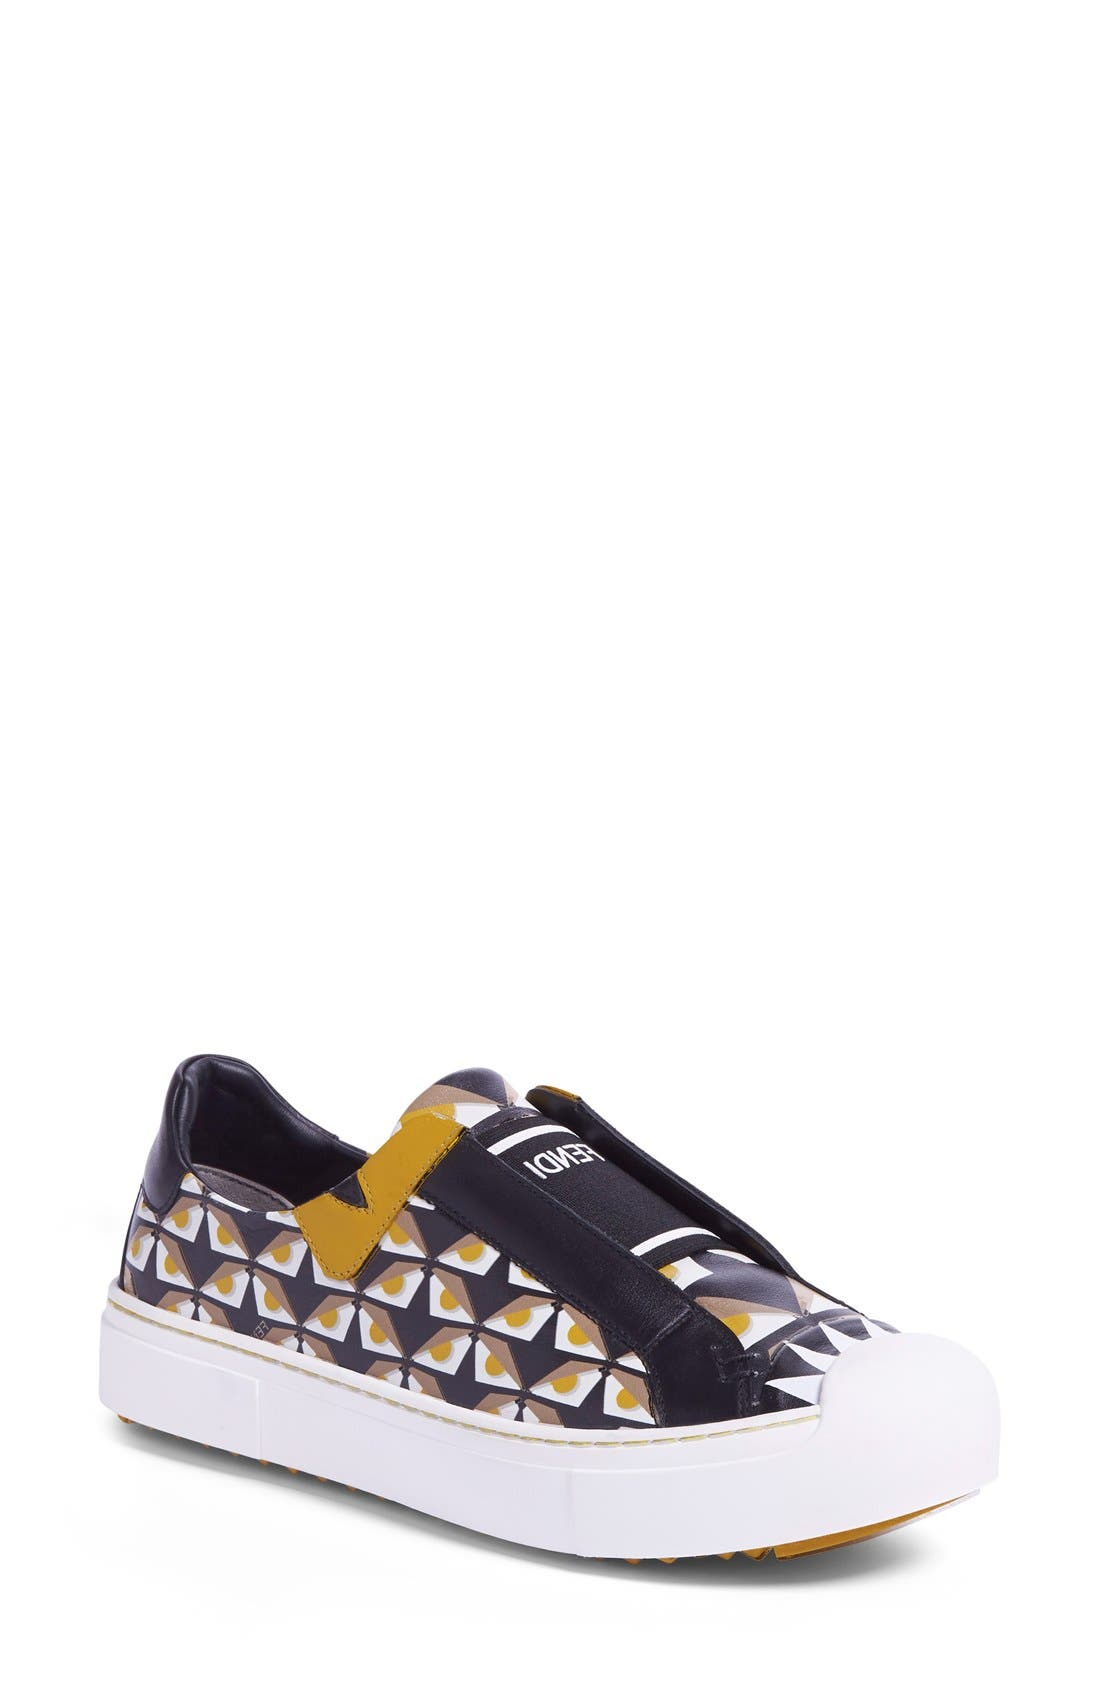 Main Image - Fendi 'Bugs' Slip-On Sneaker (Women)